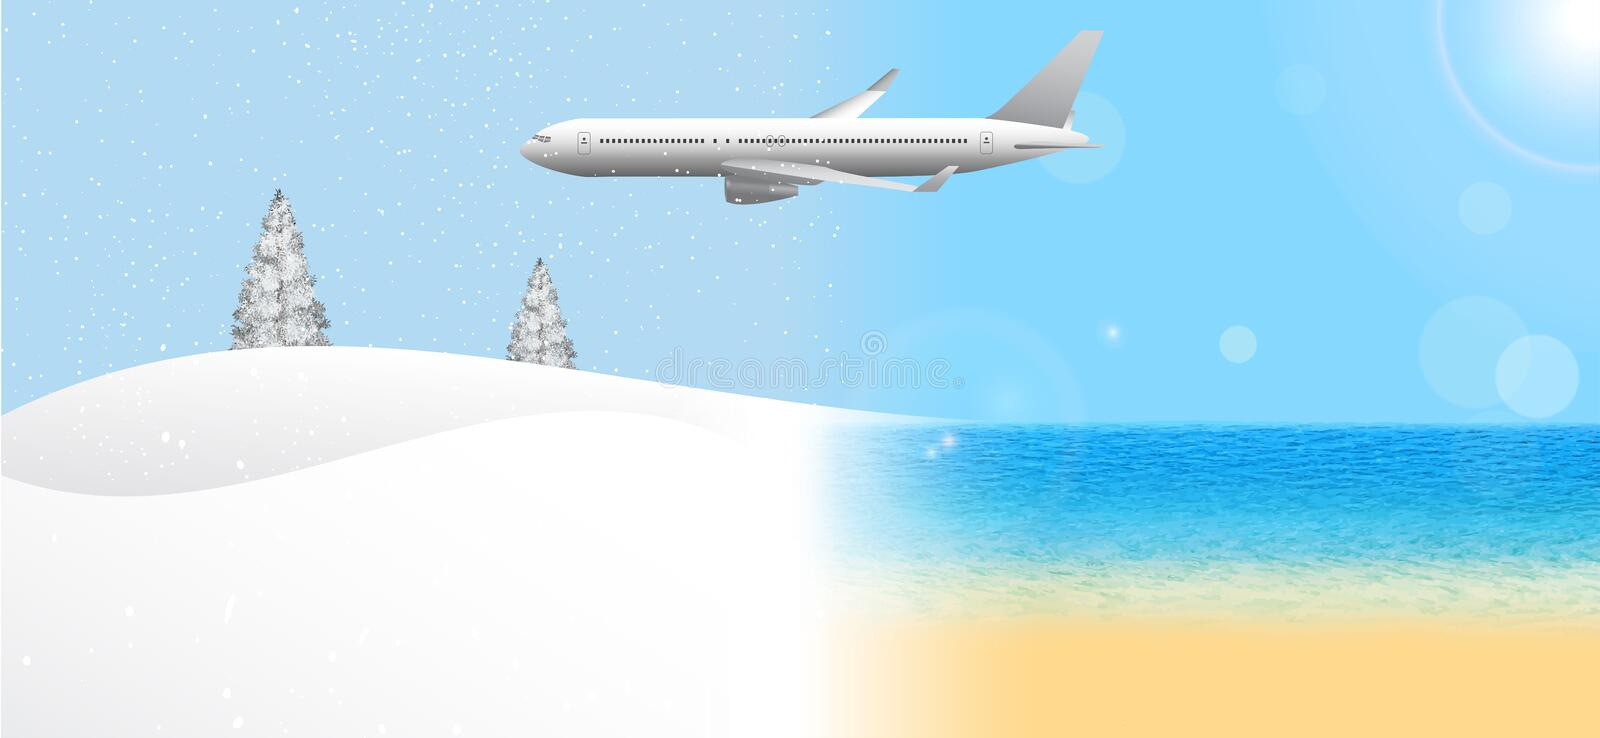 Passenger airplane flying from summer to winter vector illustration